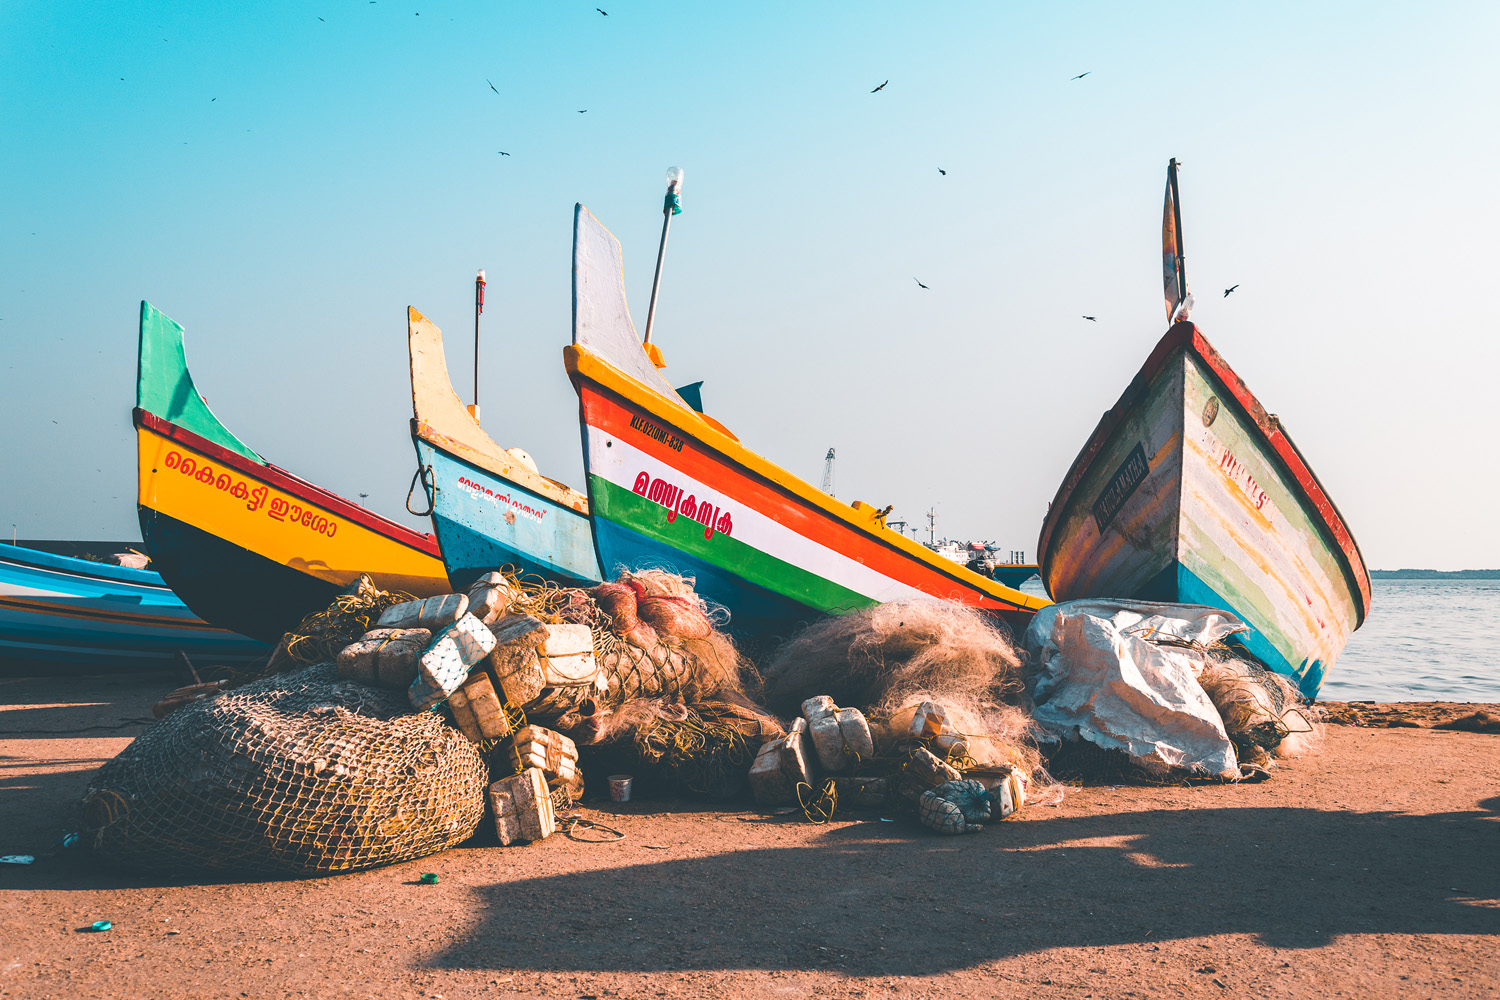 Boats on an Indian beach